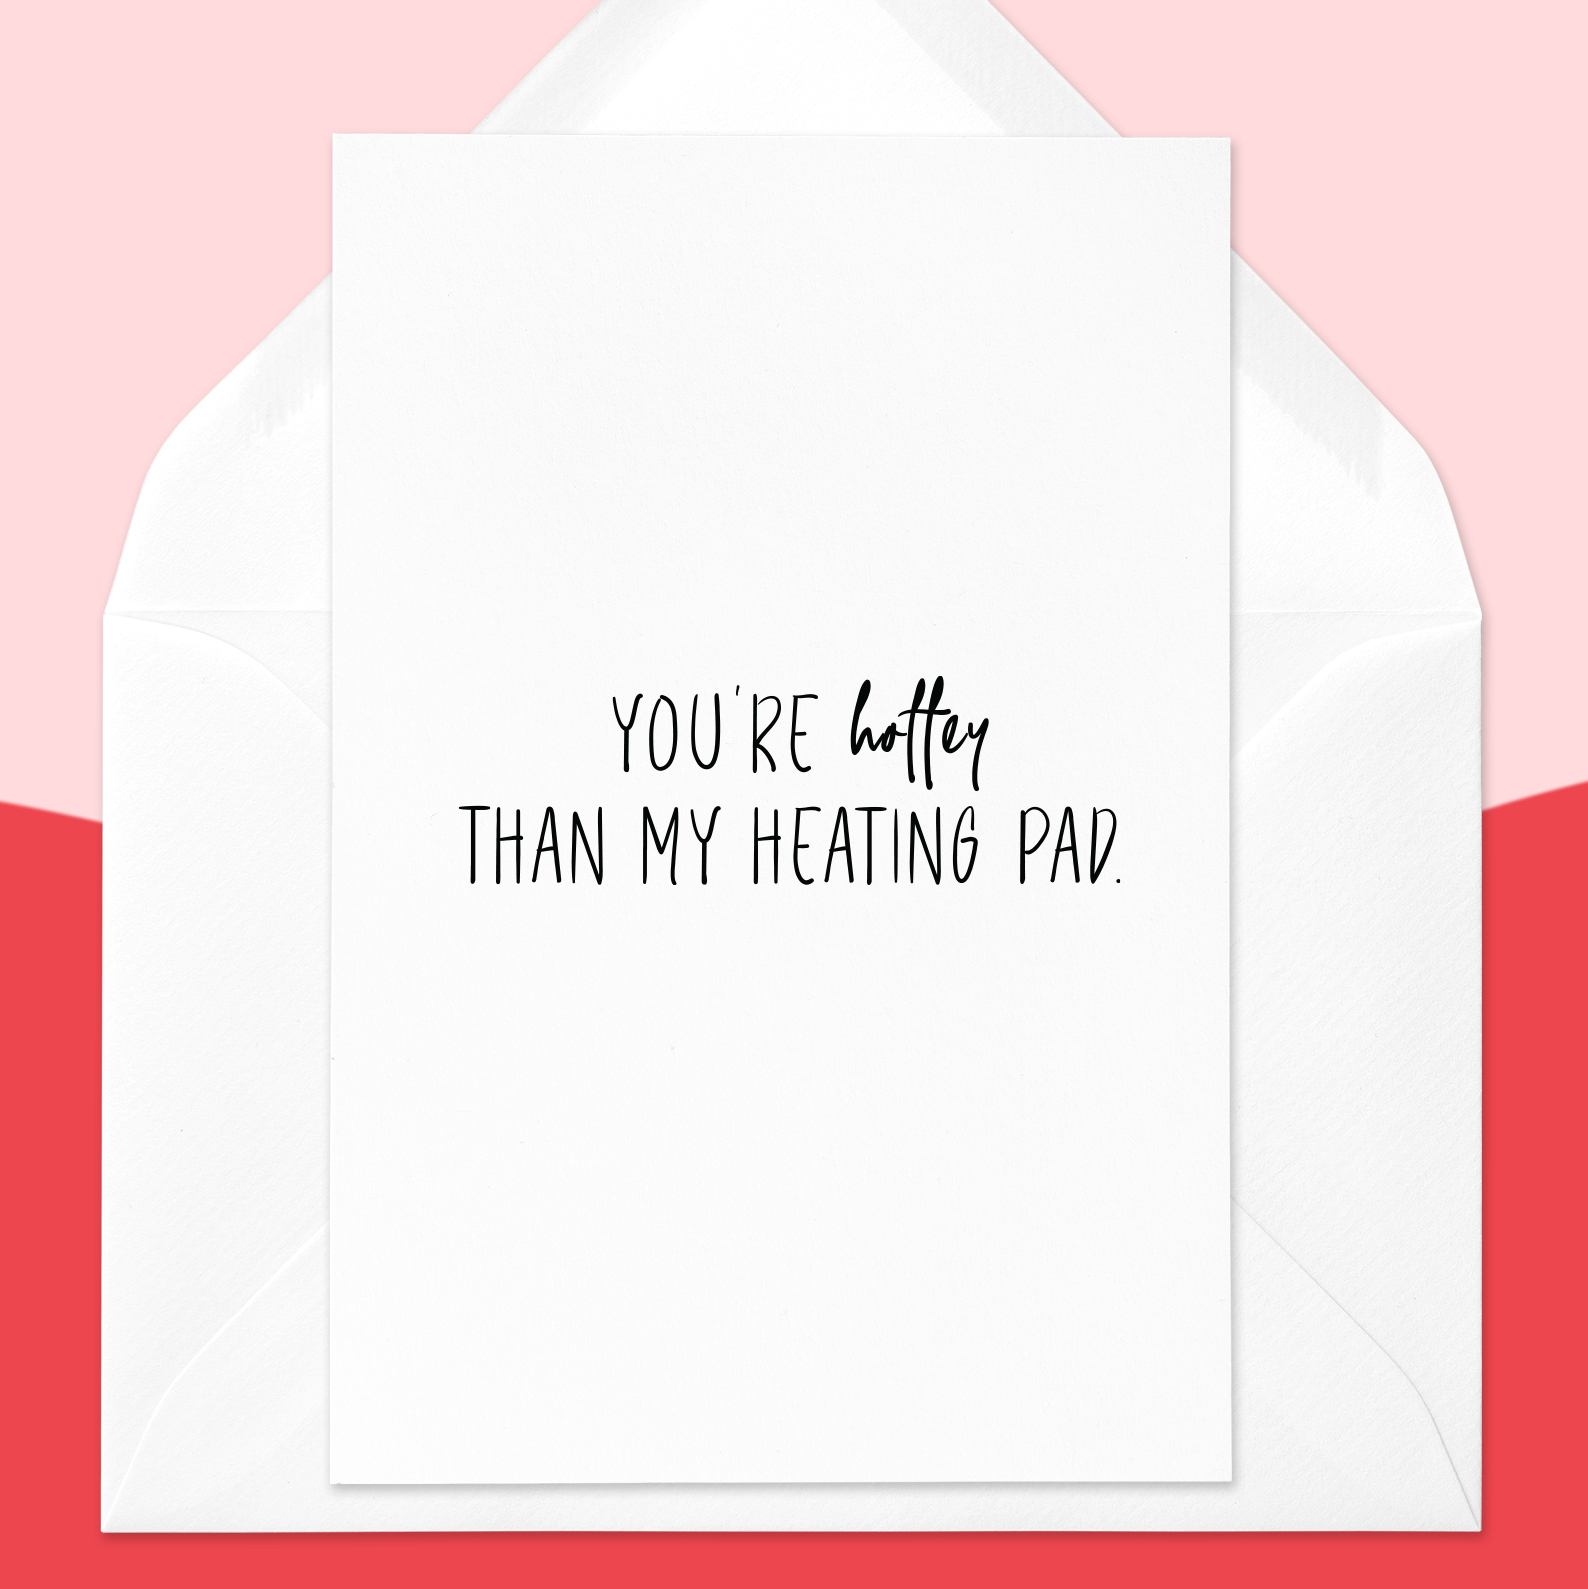 chronic-illness-valentines-card